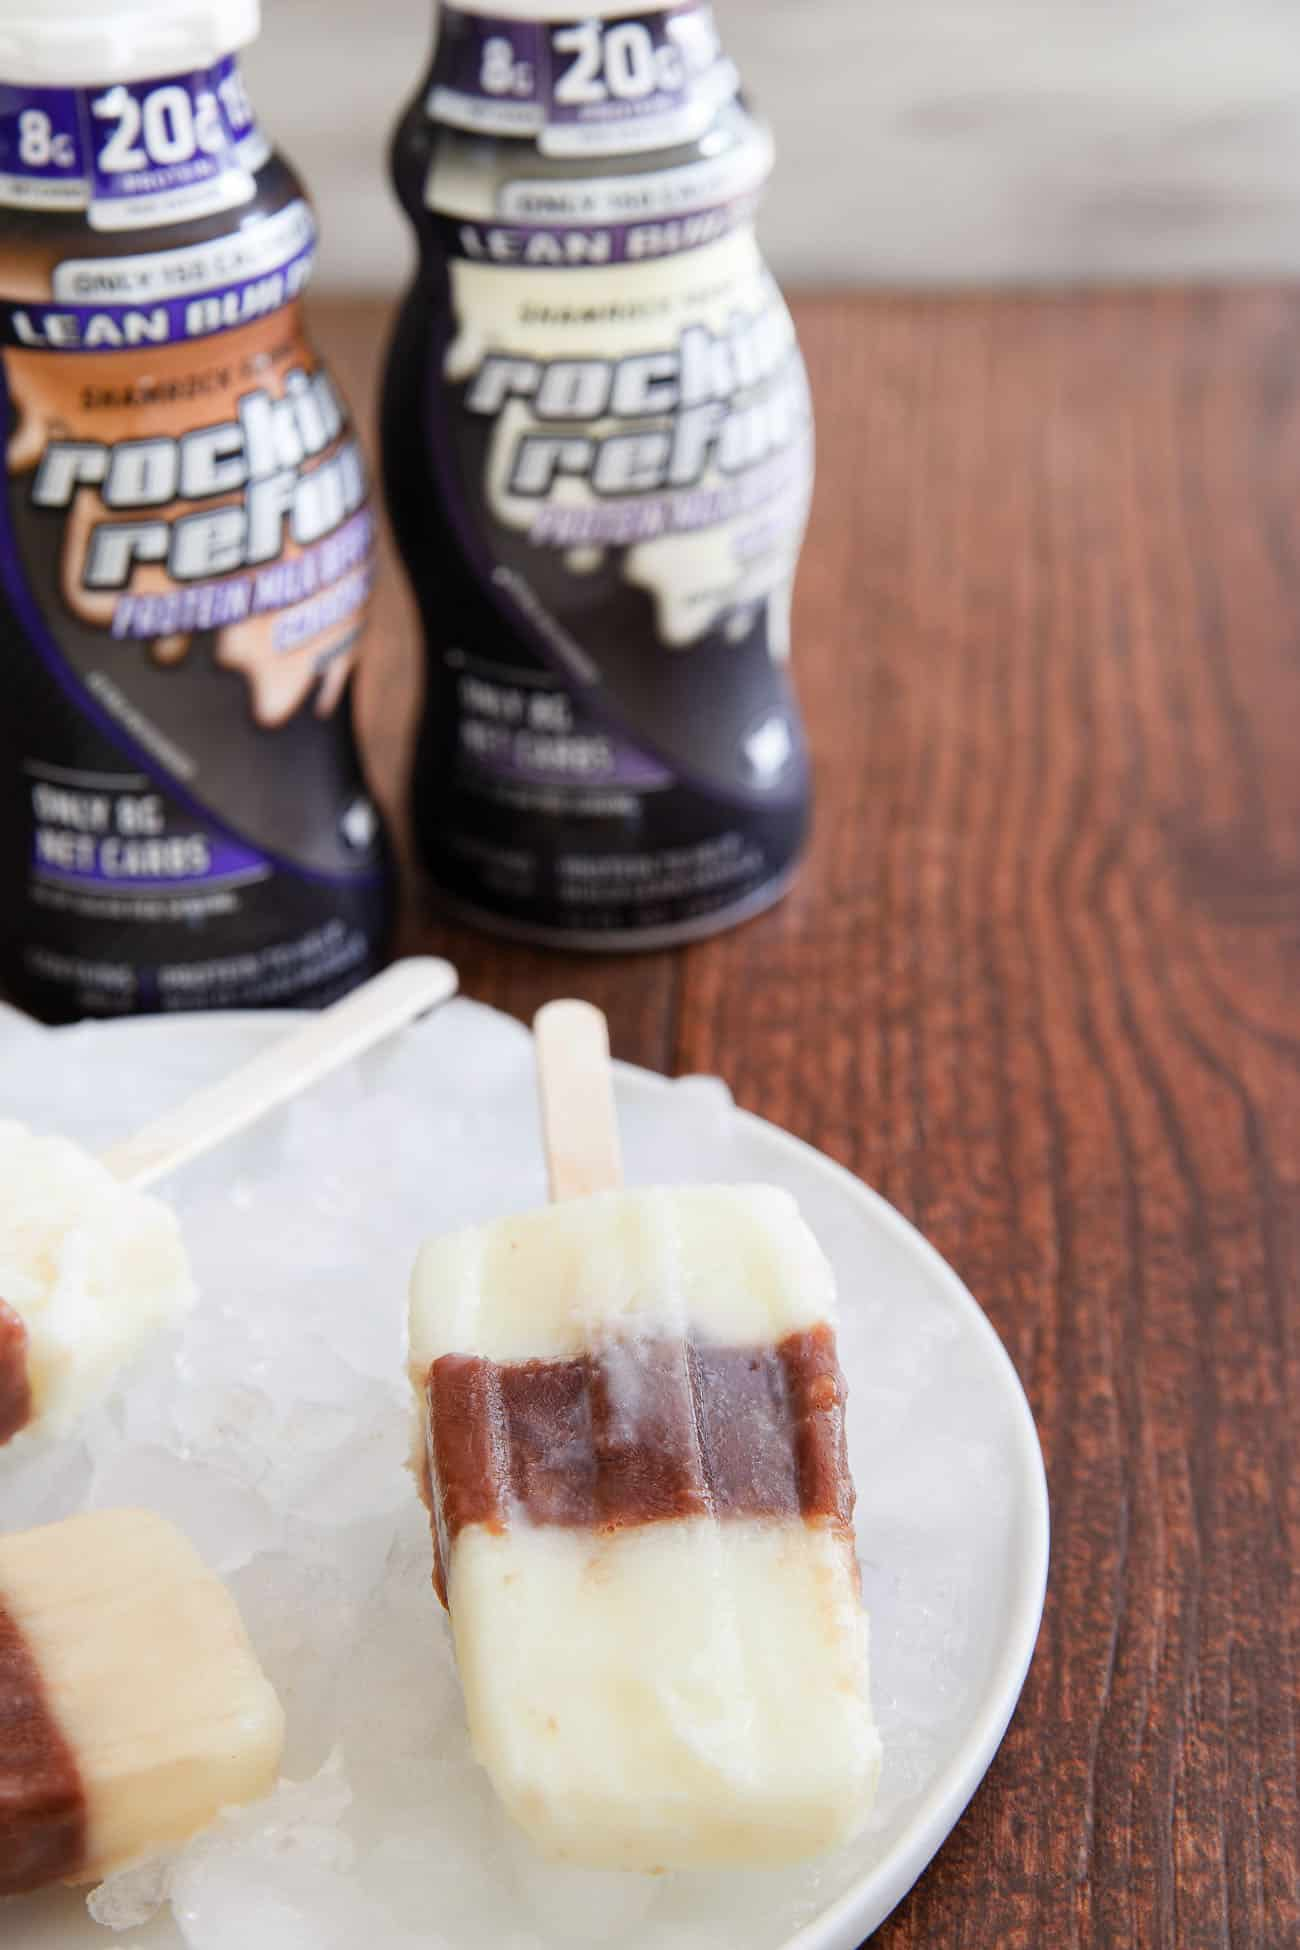 If you're craving an icy treat, try making ice pops with both vanilla and chocolate varieties of Rockin' Refuel!